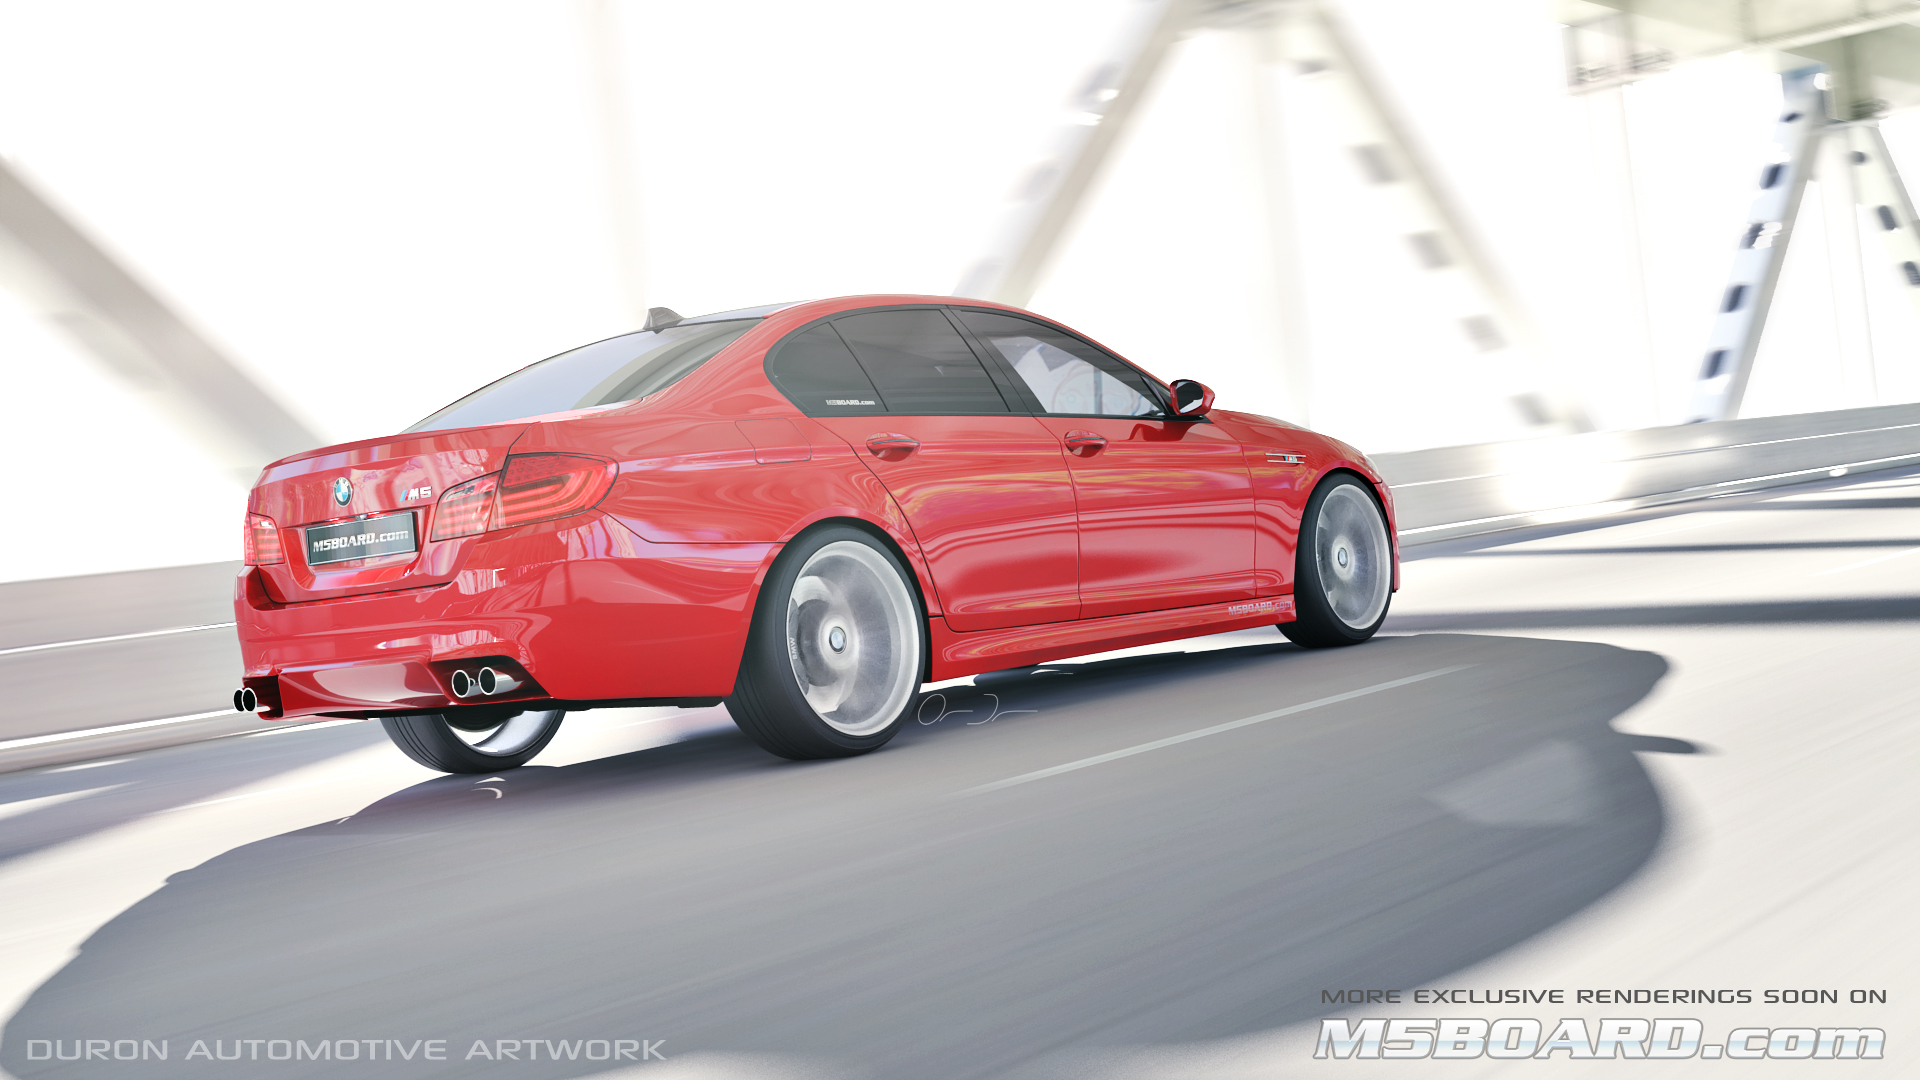 Picture (3D Studio computerrendering): BMW M5 F10 2011 in clear Indianapolis Red + Interlagos Blue at the Luxury Estate from the Front and Rear-m5boardf10bmwm5melbournered.jpg